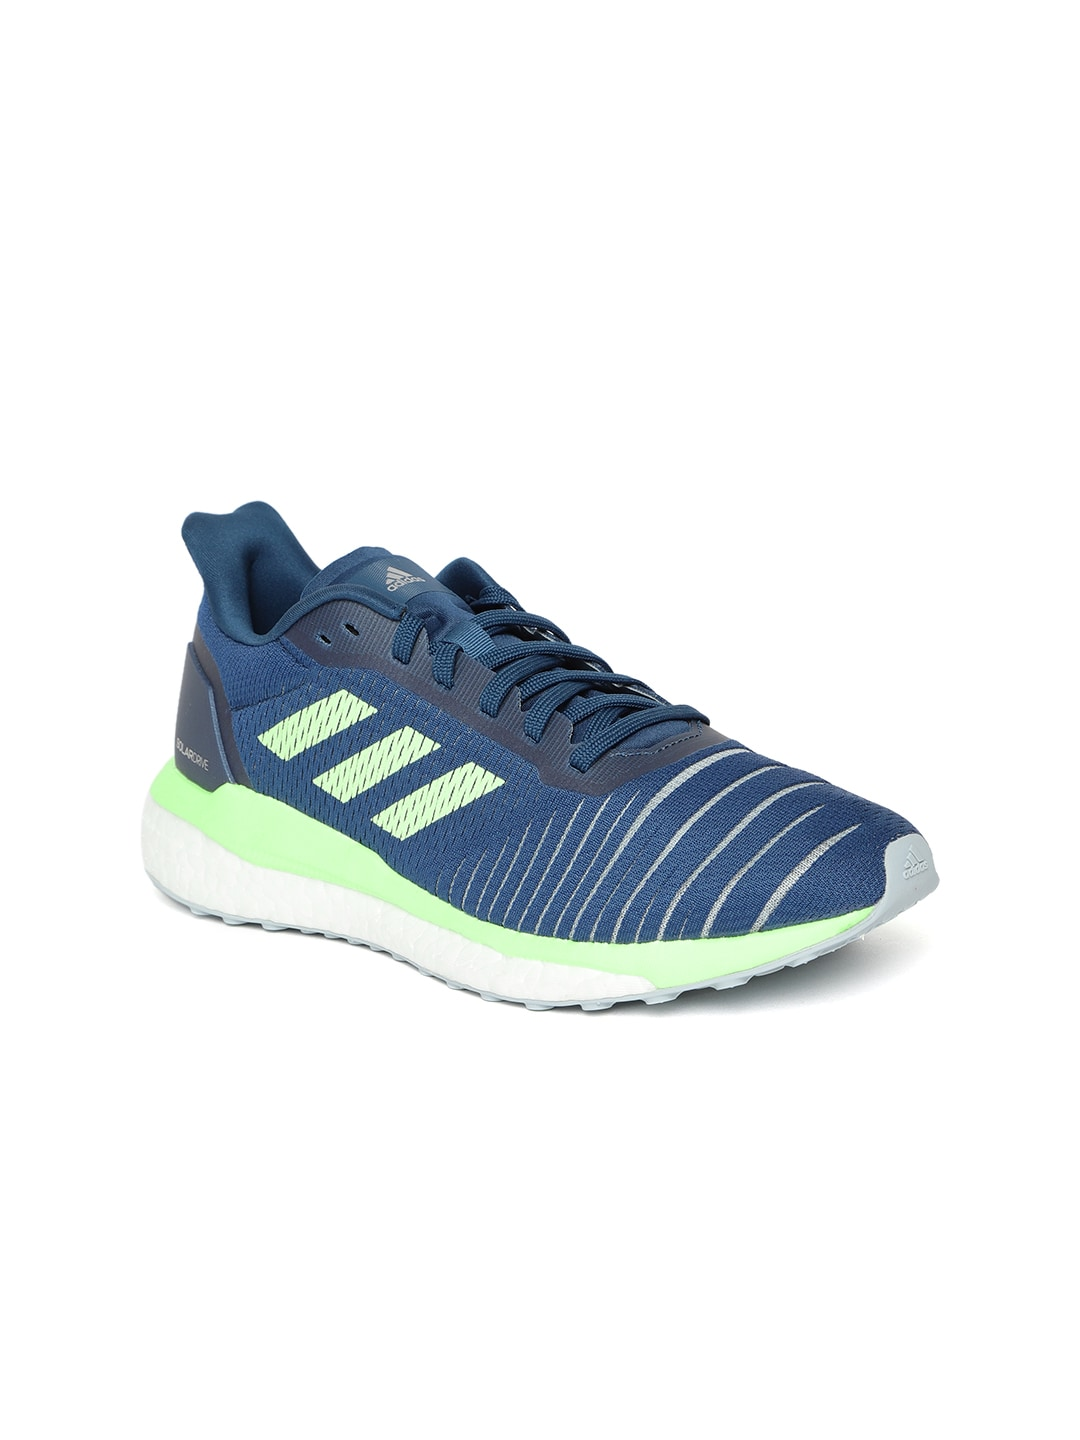 c5278ee25da7 Sports Shoes for Women - Buy Women Sports Shoes Online